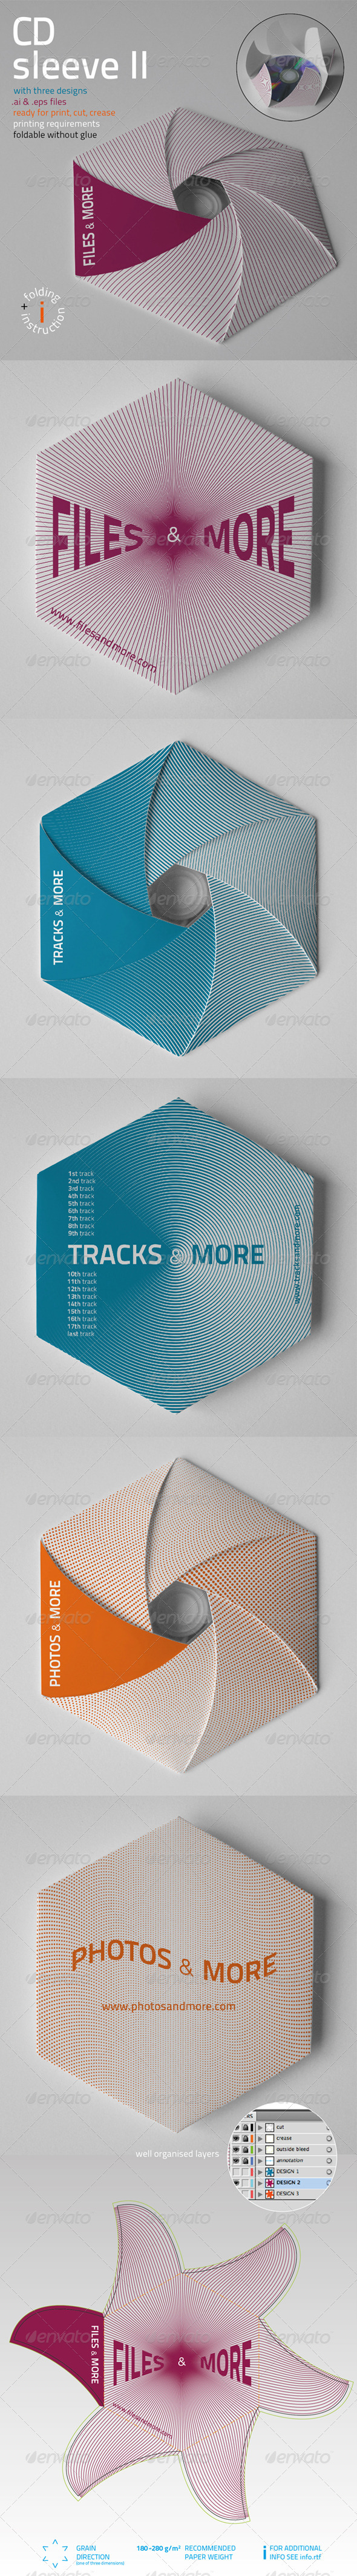 CD Sleeve v2 - Packaging Print Templates